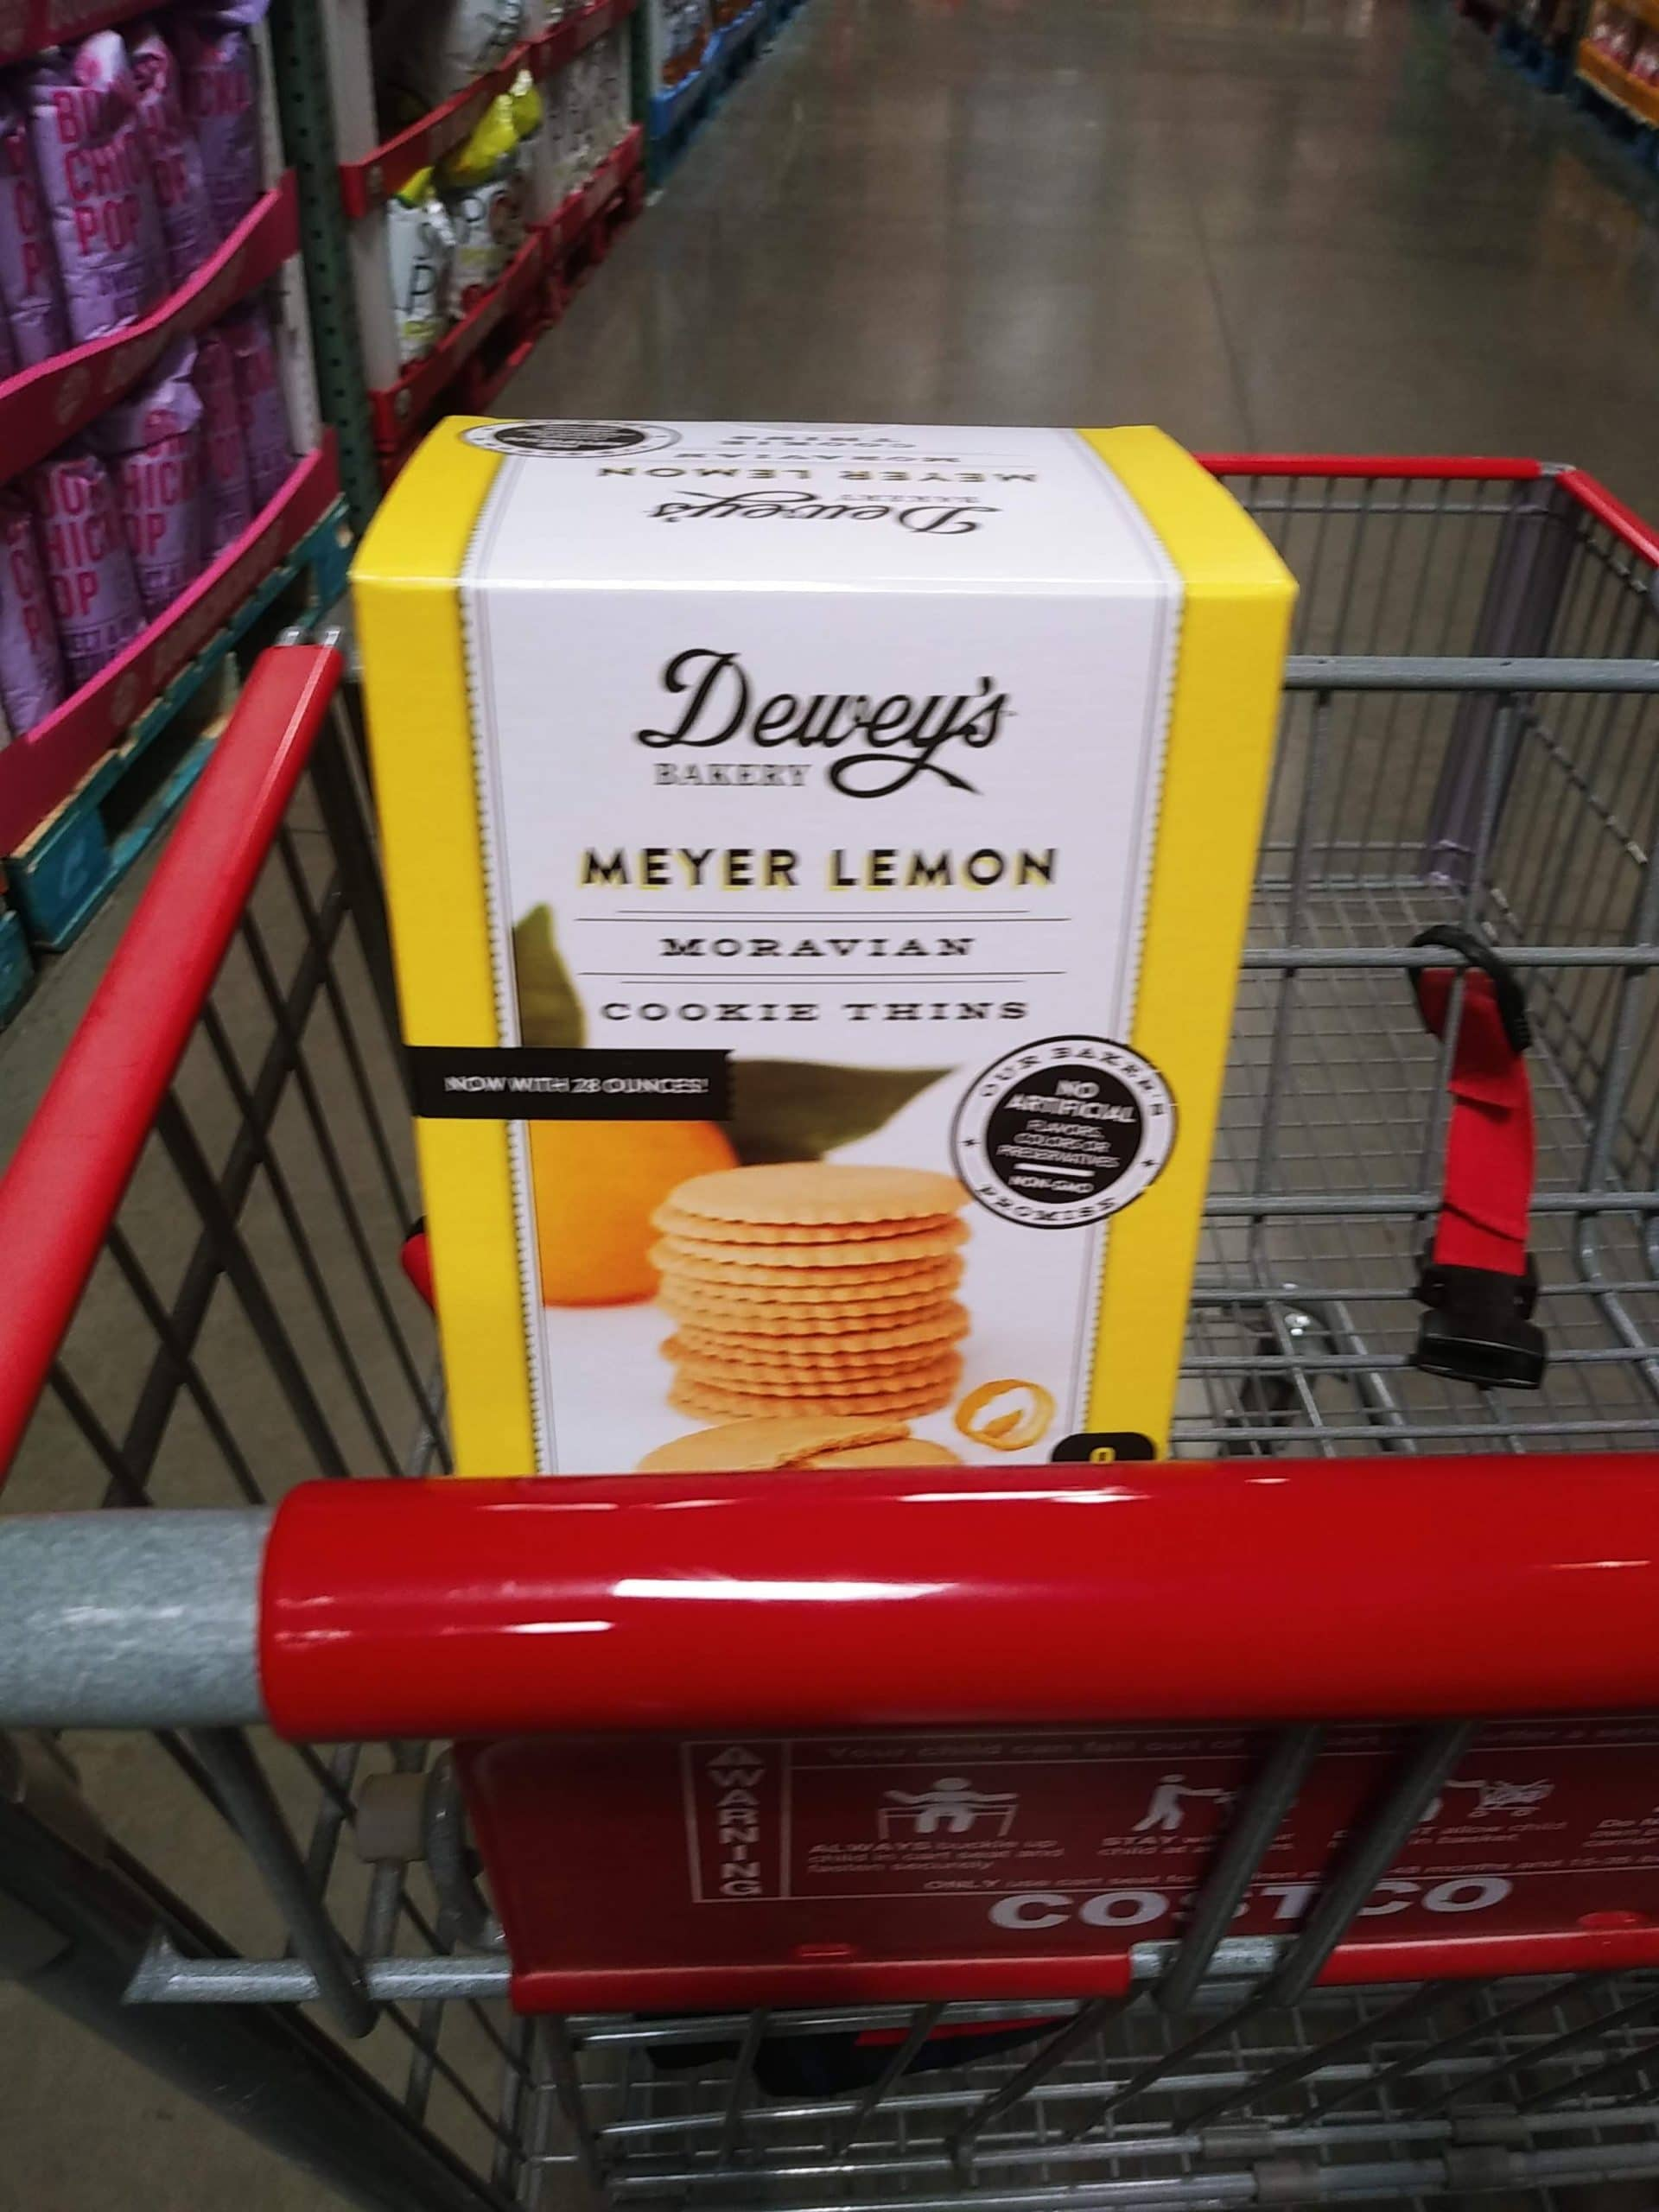 Deweys Meyer Lemon Cookie Thins $5.79